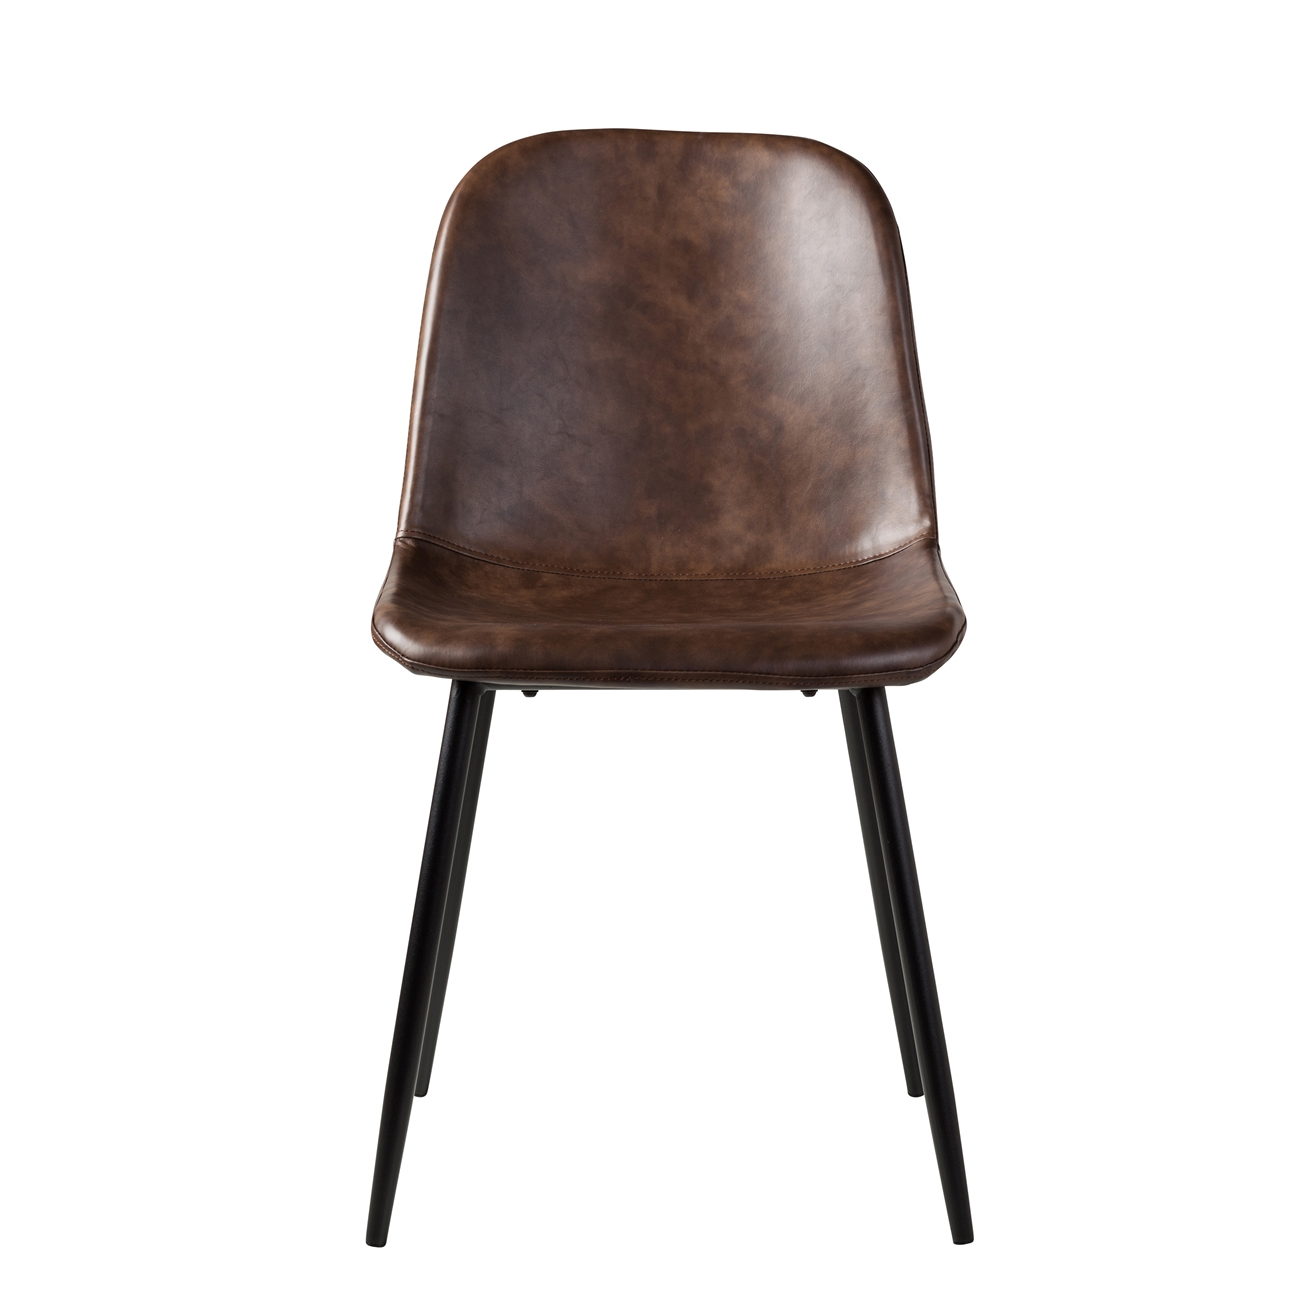 Distressed Brown Leather Dining Chair